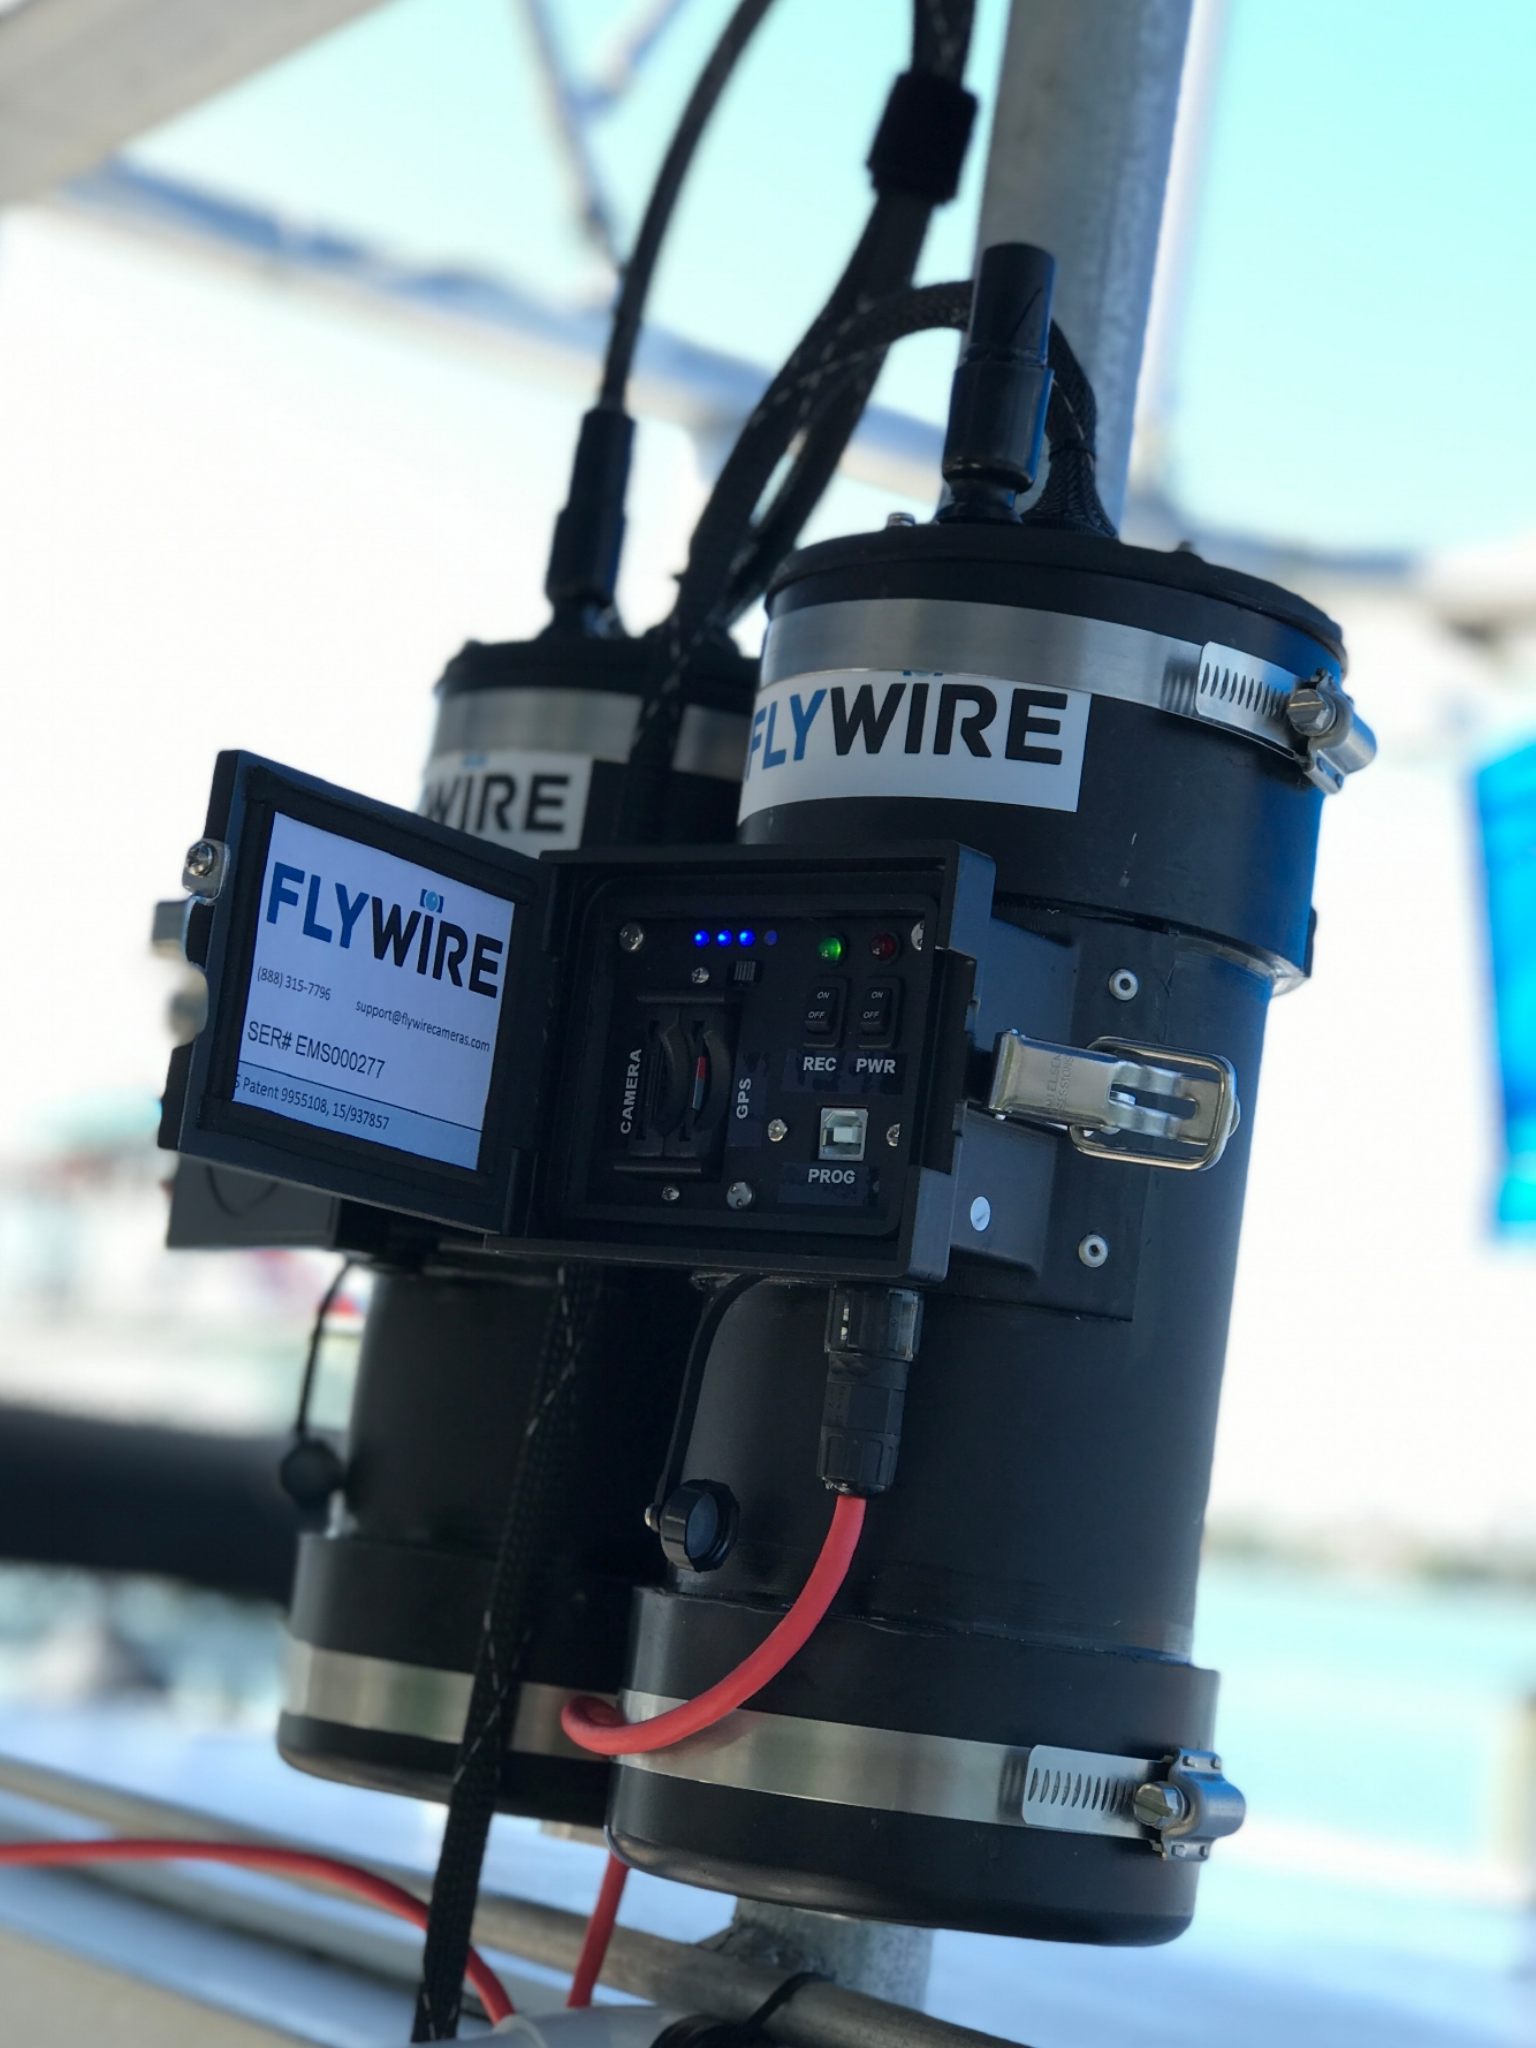 DEPLOY - Then we install our proprietary hardware to verify good practices. Our miniature camera captures a better view allowing FlyWire to monitor more fishing operations in more places.We are the only fully portable electronic monitoring system on the market and the easiest to service.We keep boats on the water making money.